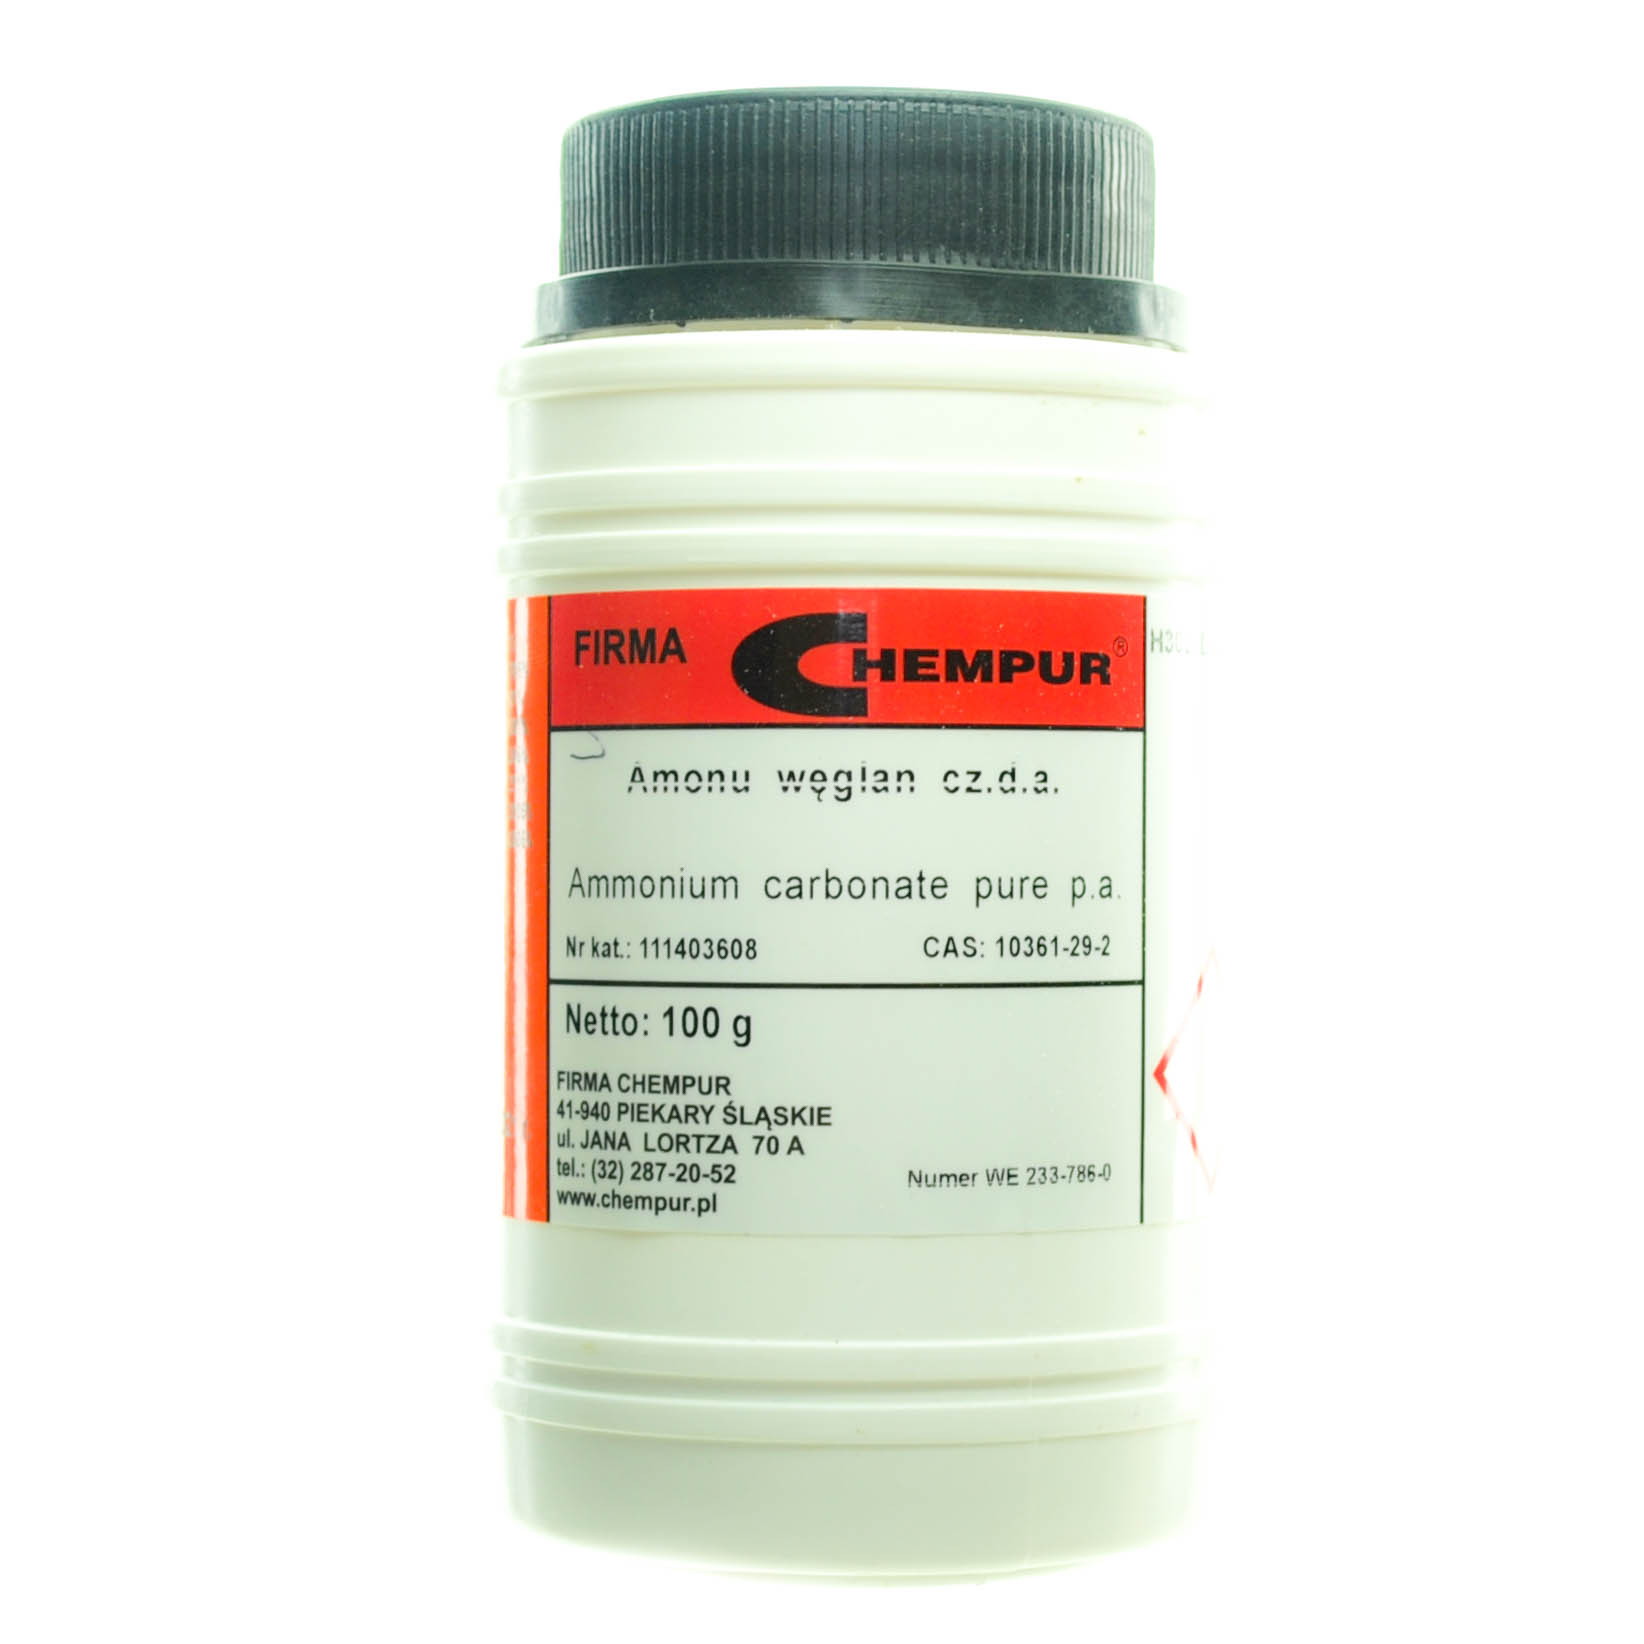 Ammonium carbonate pure p.a.